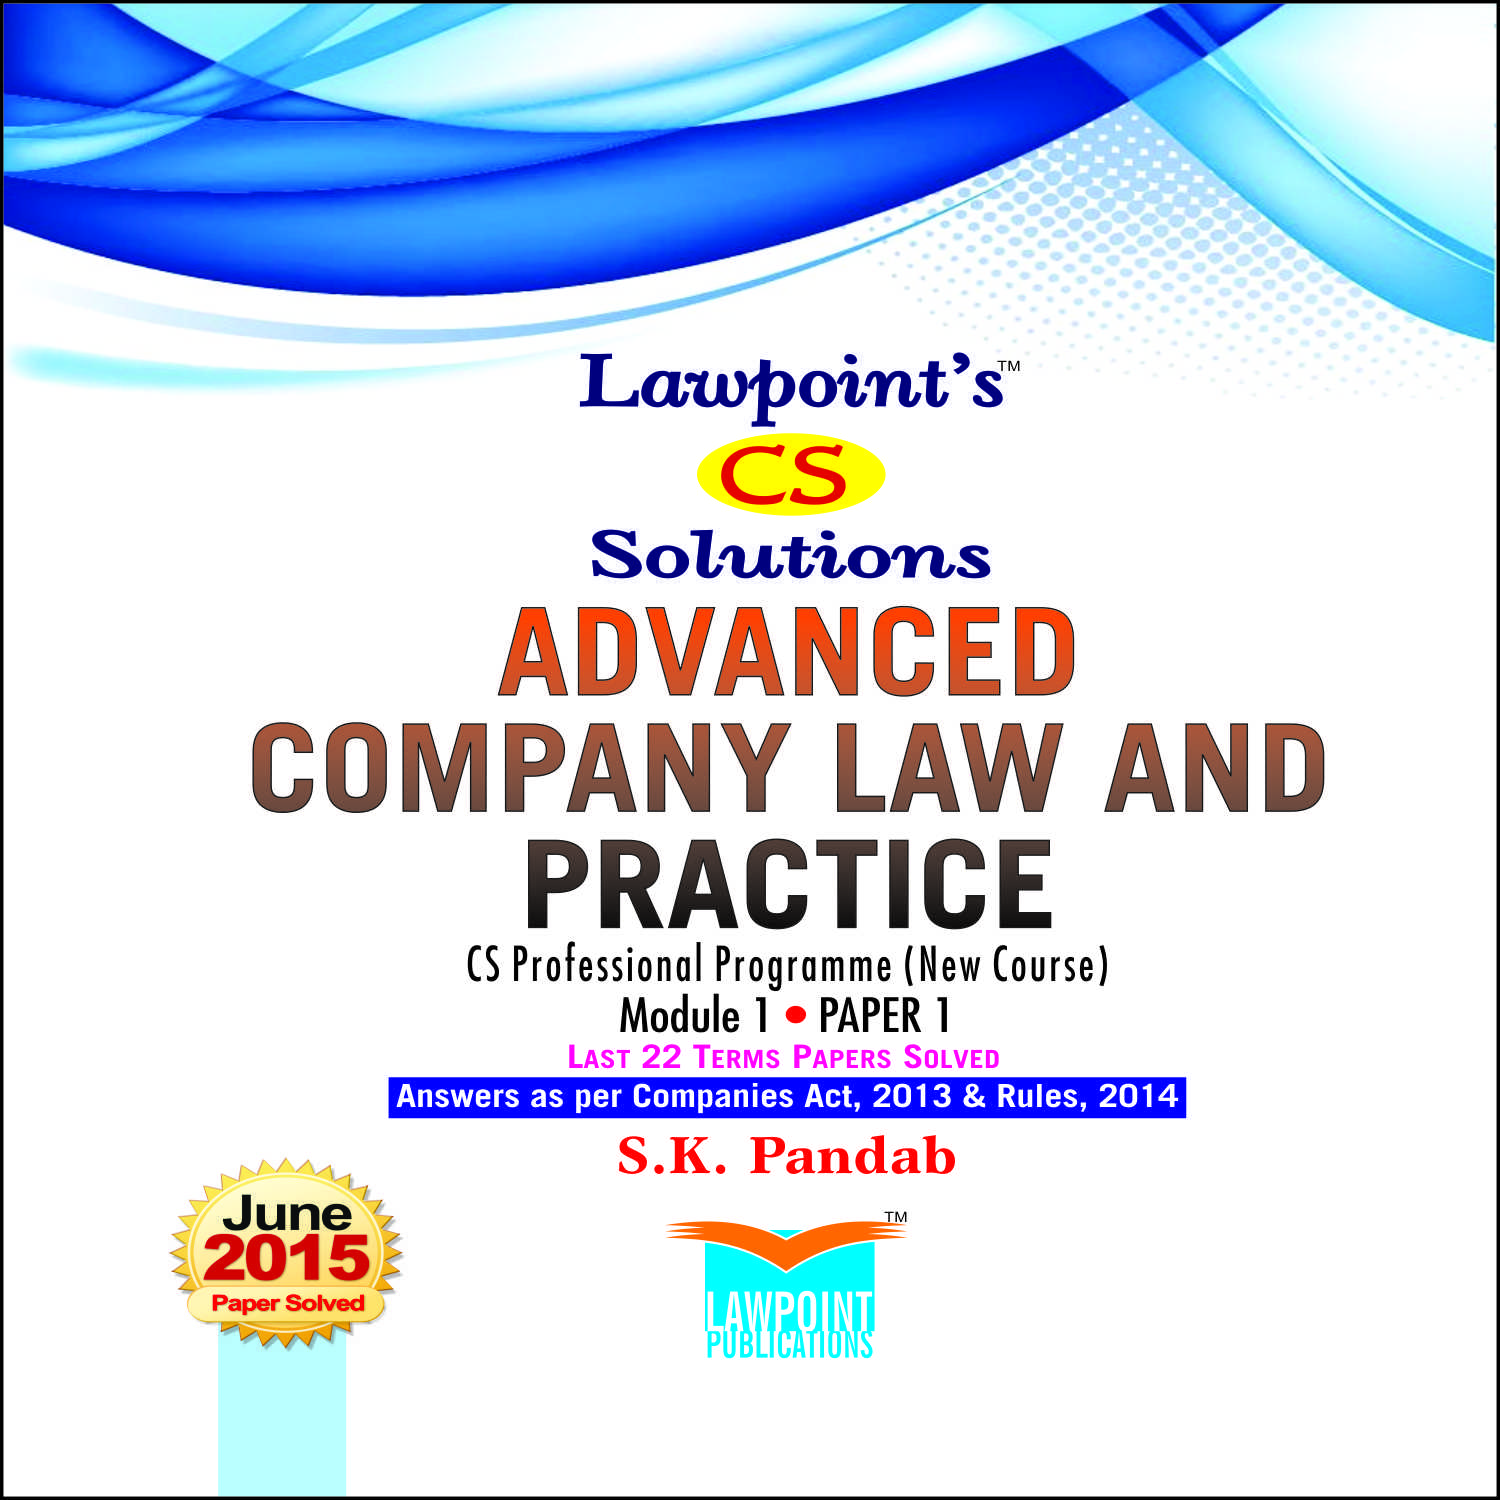 Lawpoint's CS Solutions Advanced Company Law & Practice